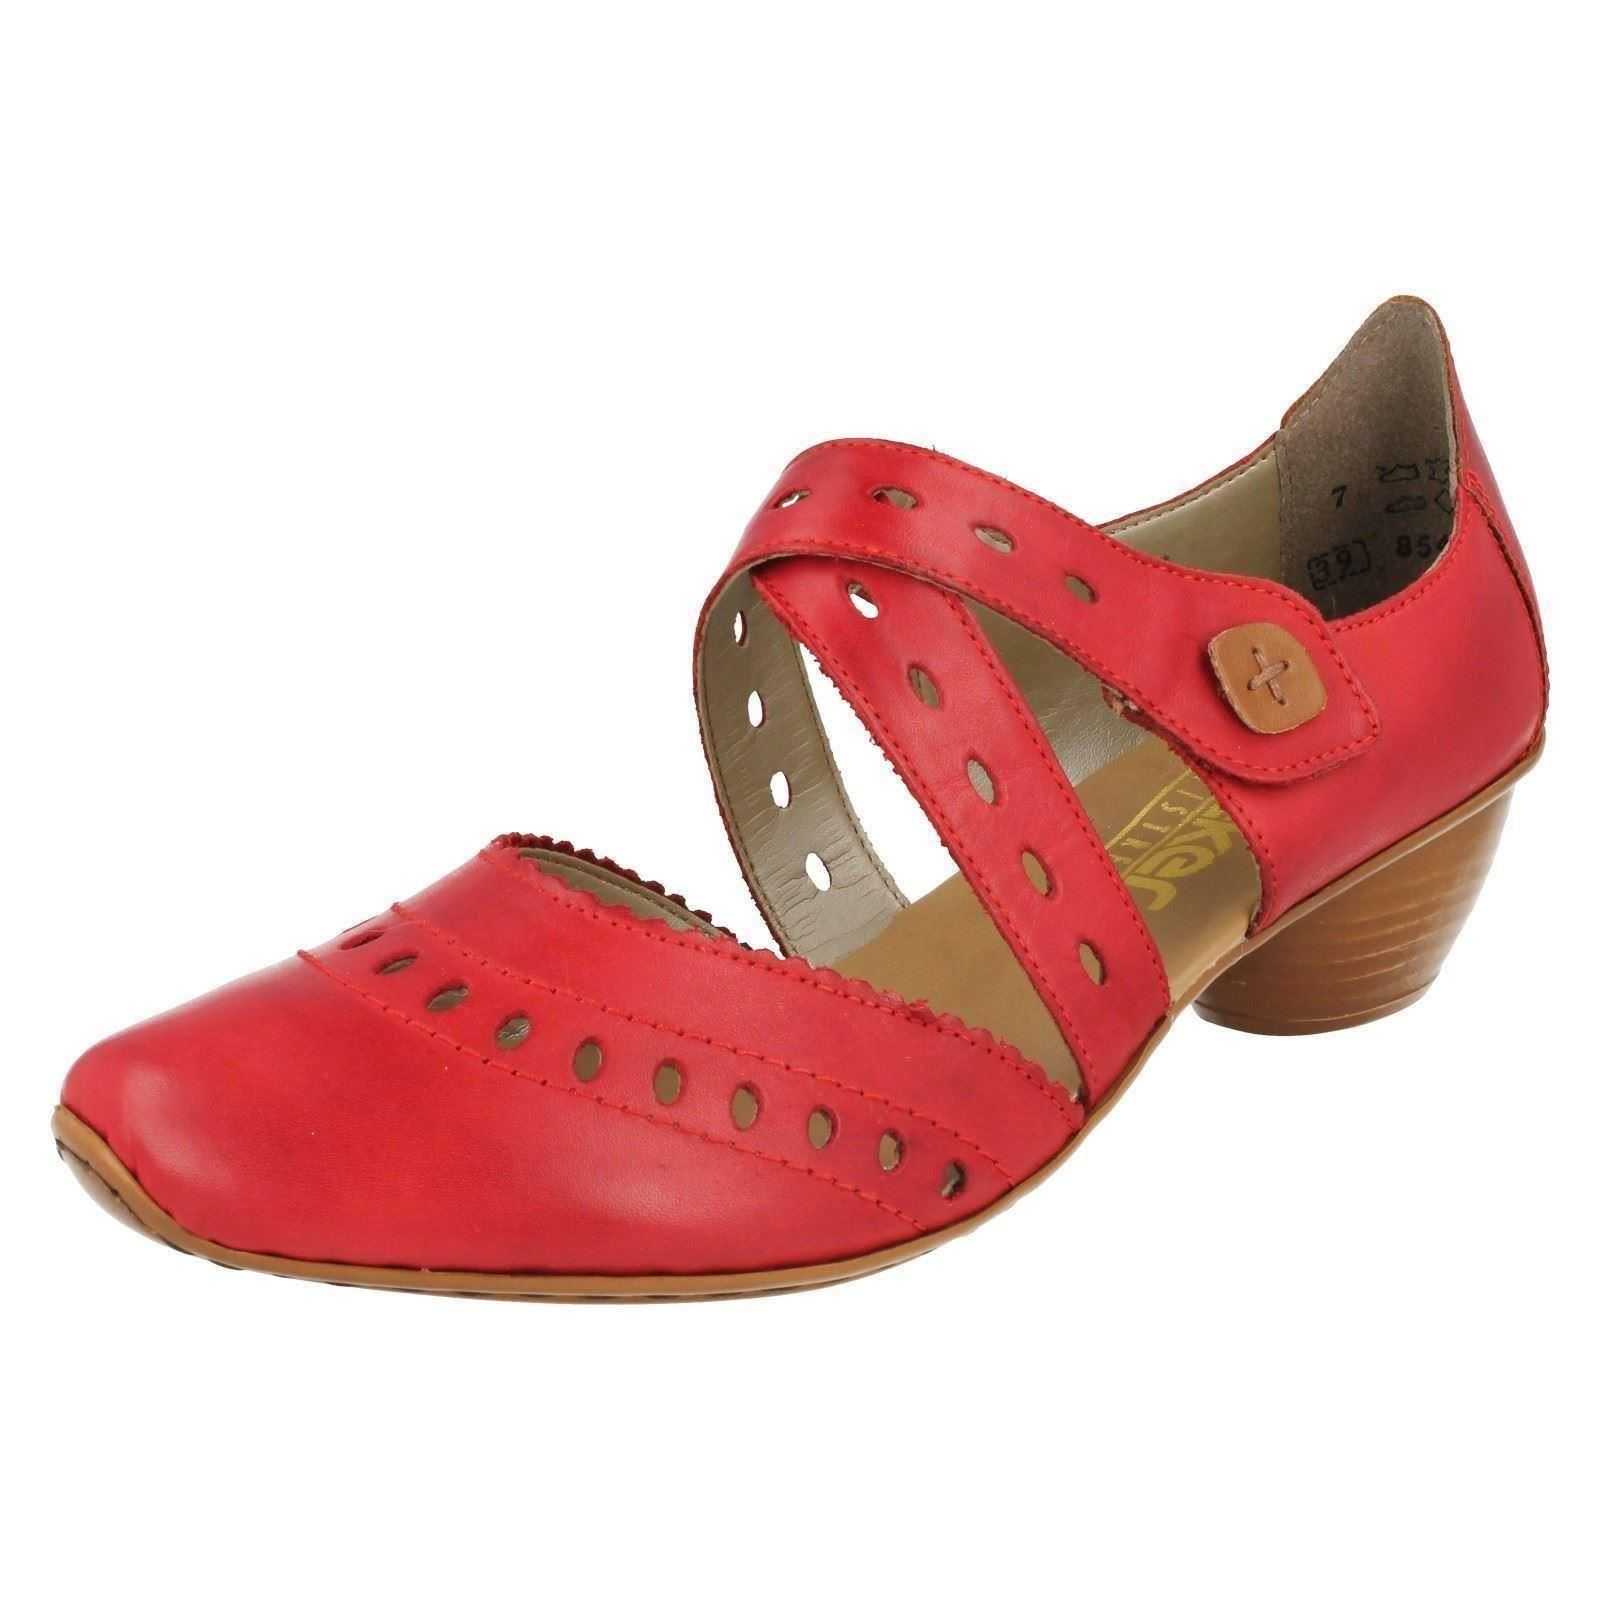 Reiker shoes ladies-rieker-shoes-style-43703 YWHQVAD